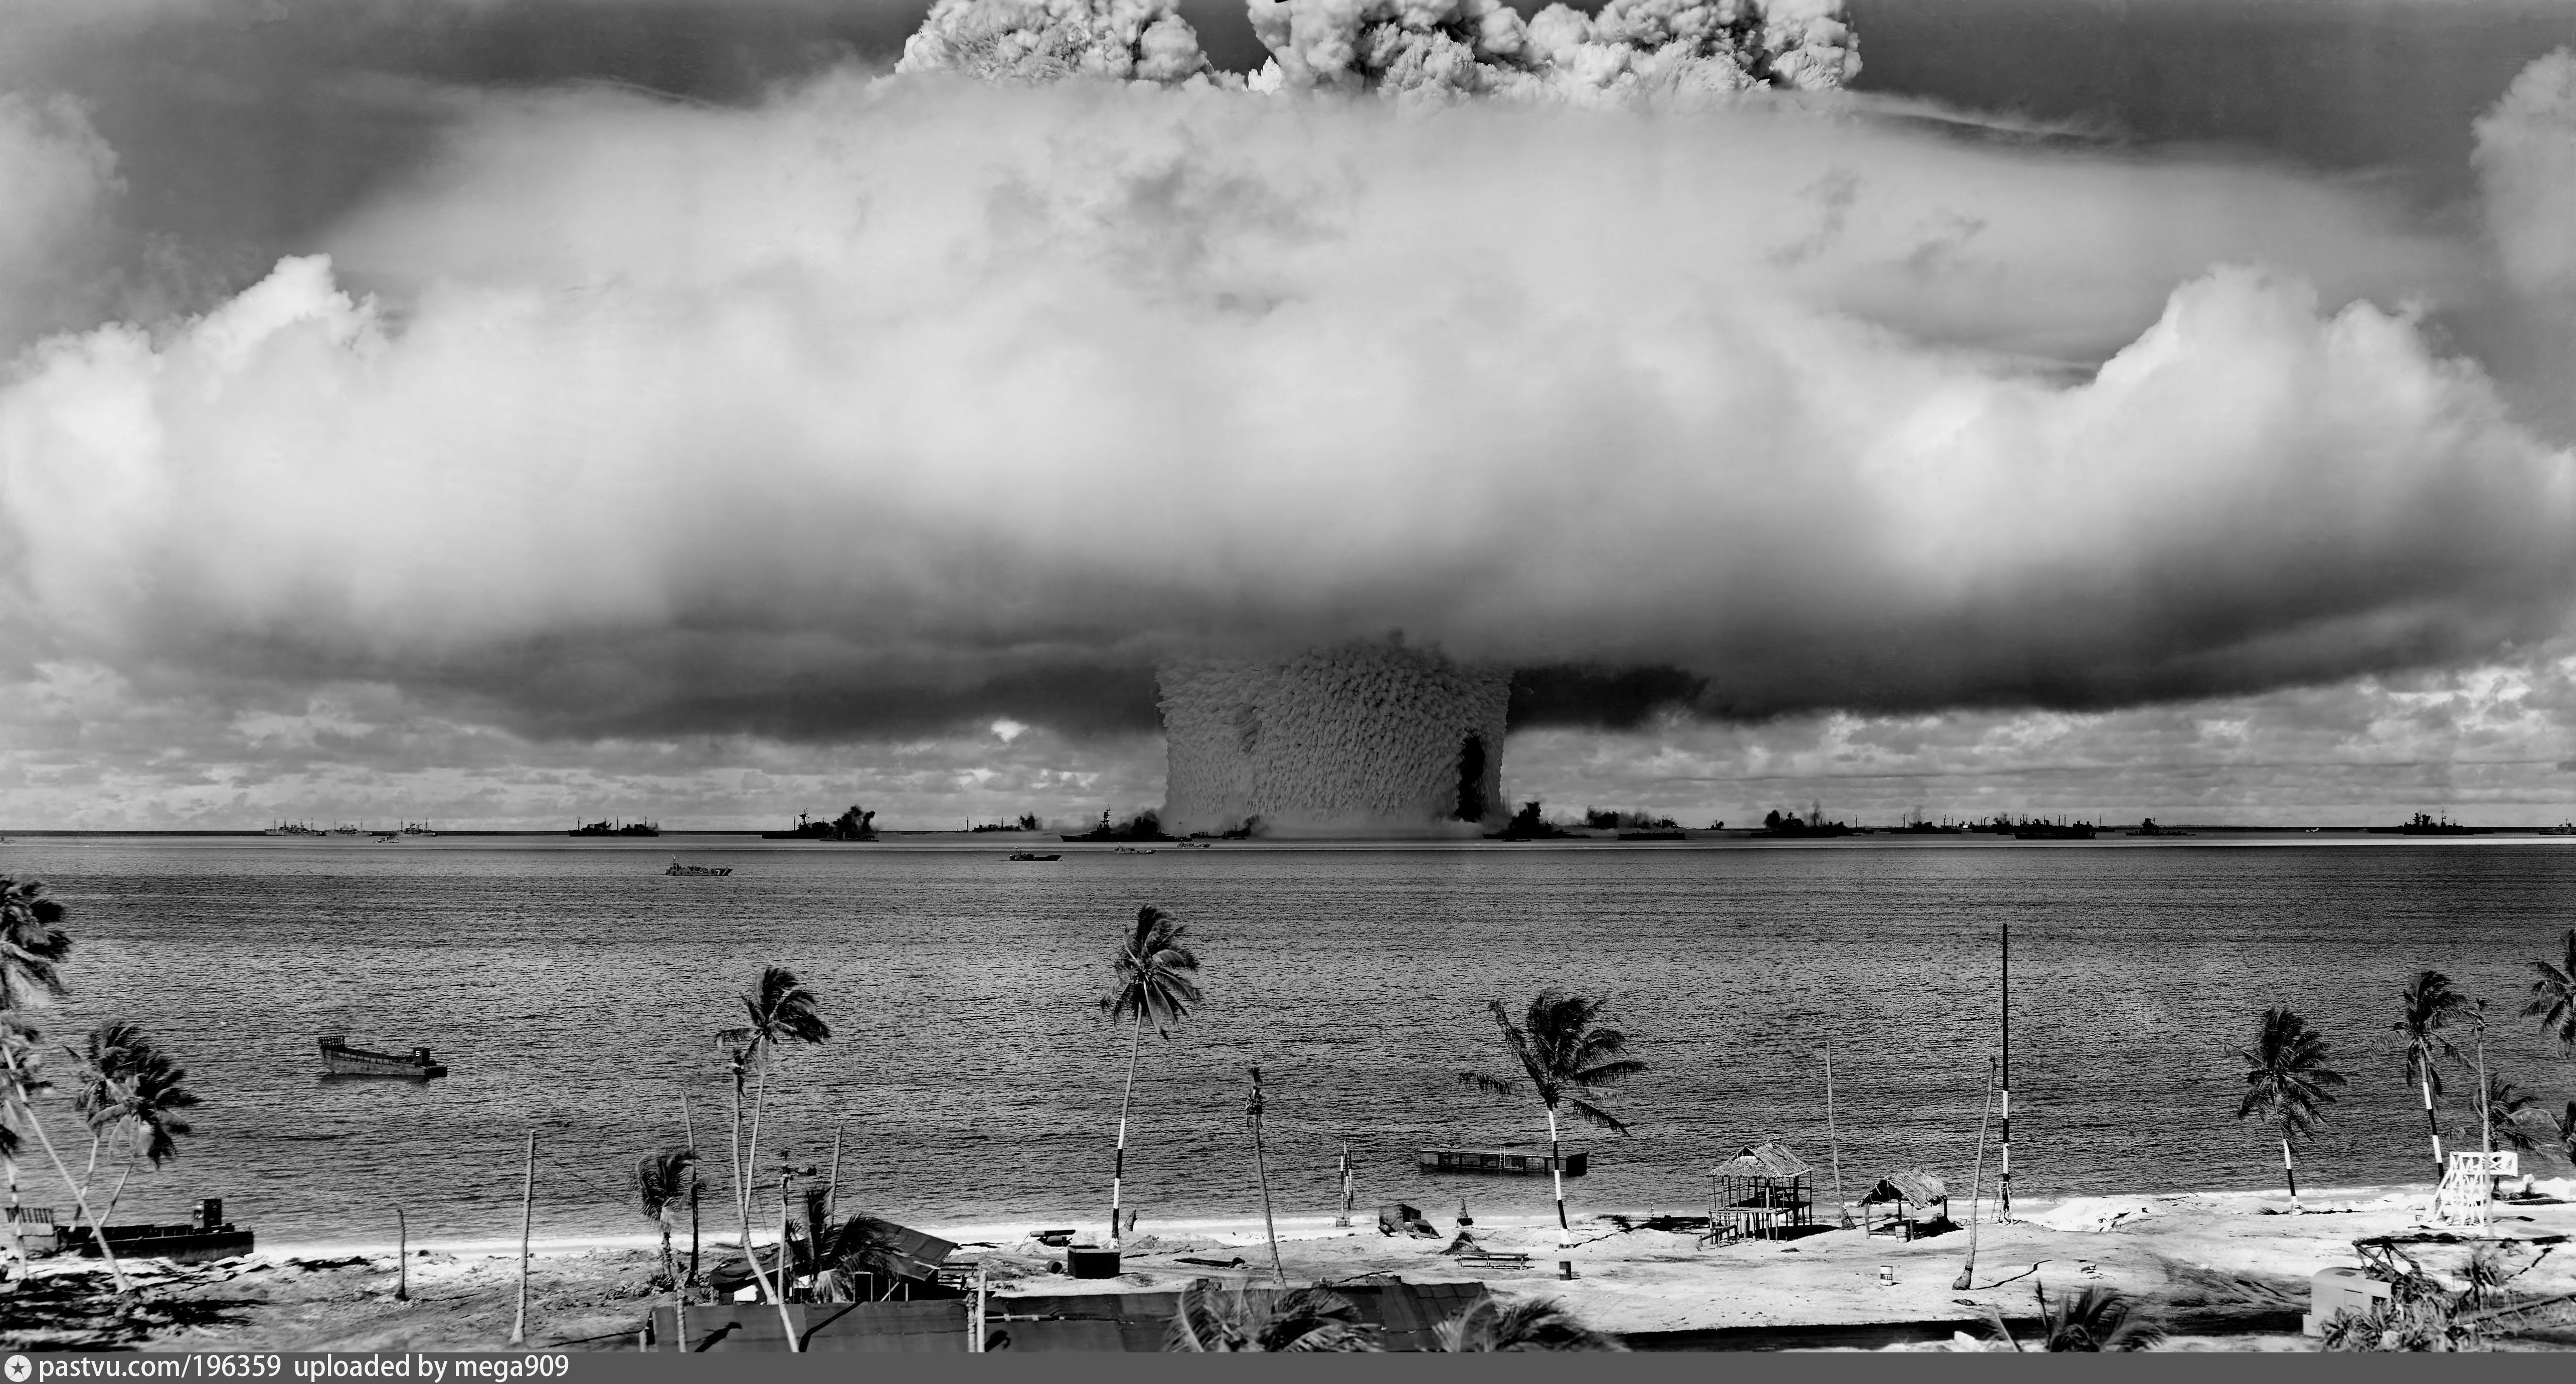 10 more films featuring nuclear attacks listverse - HD1741×891